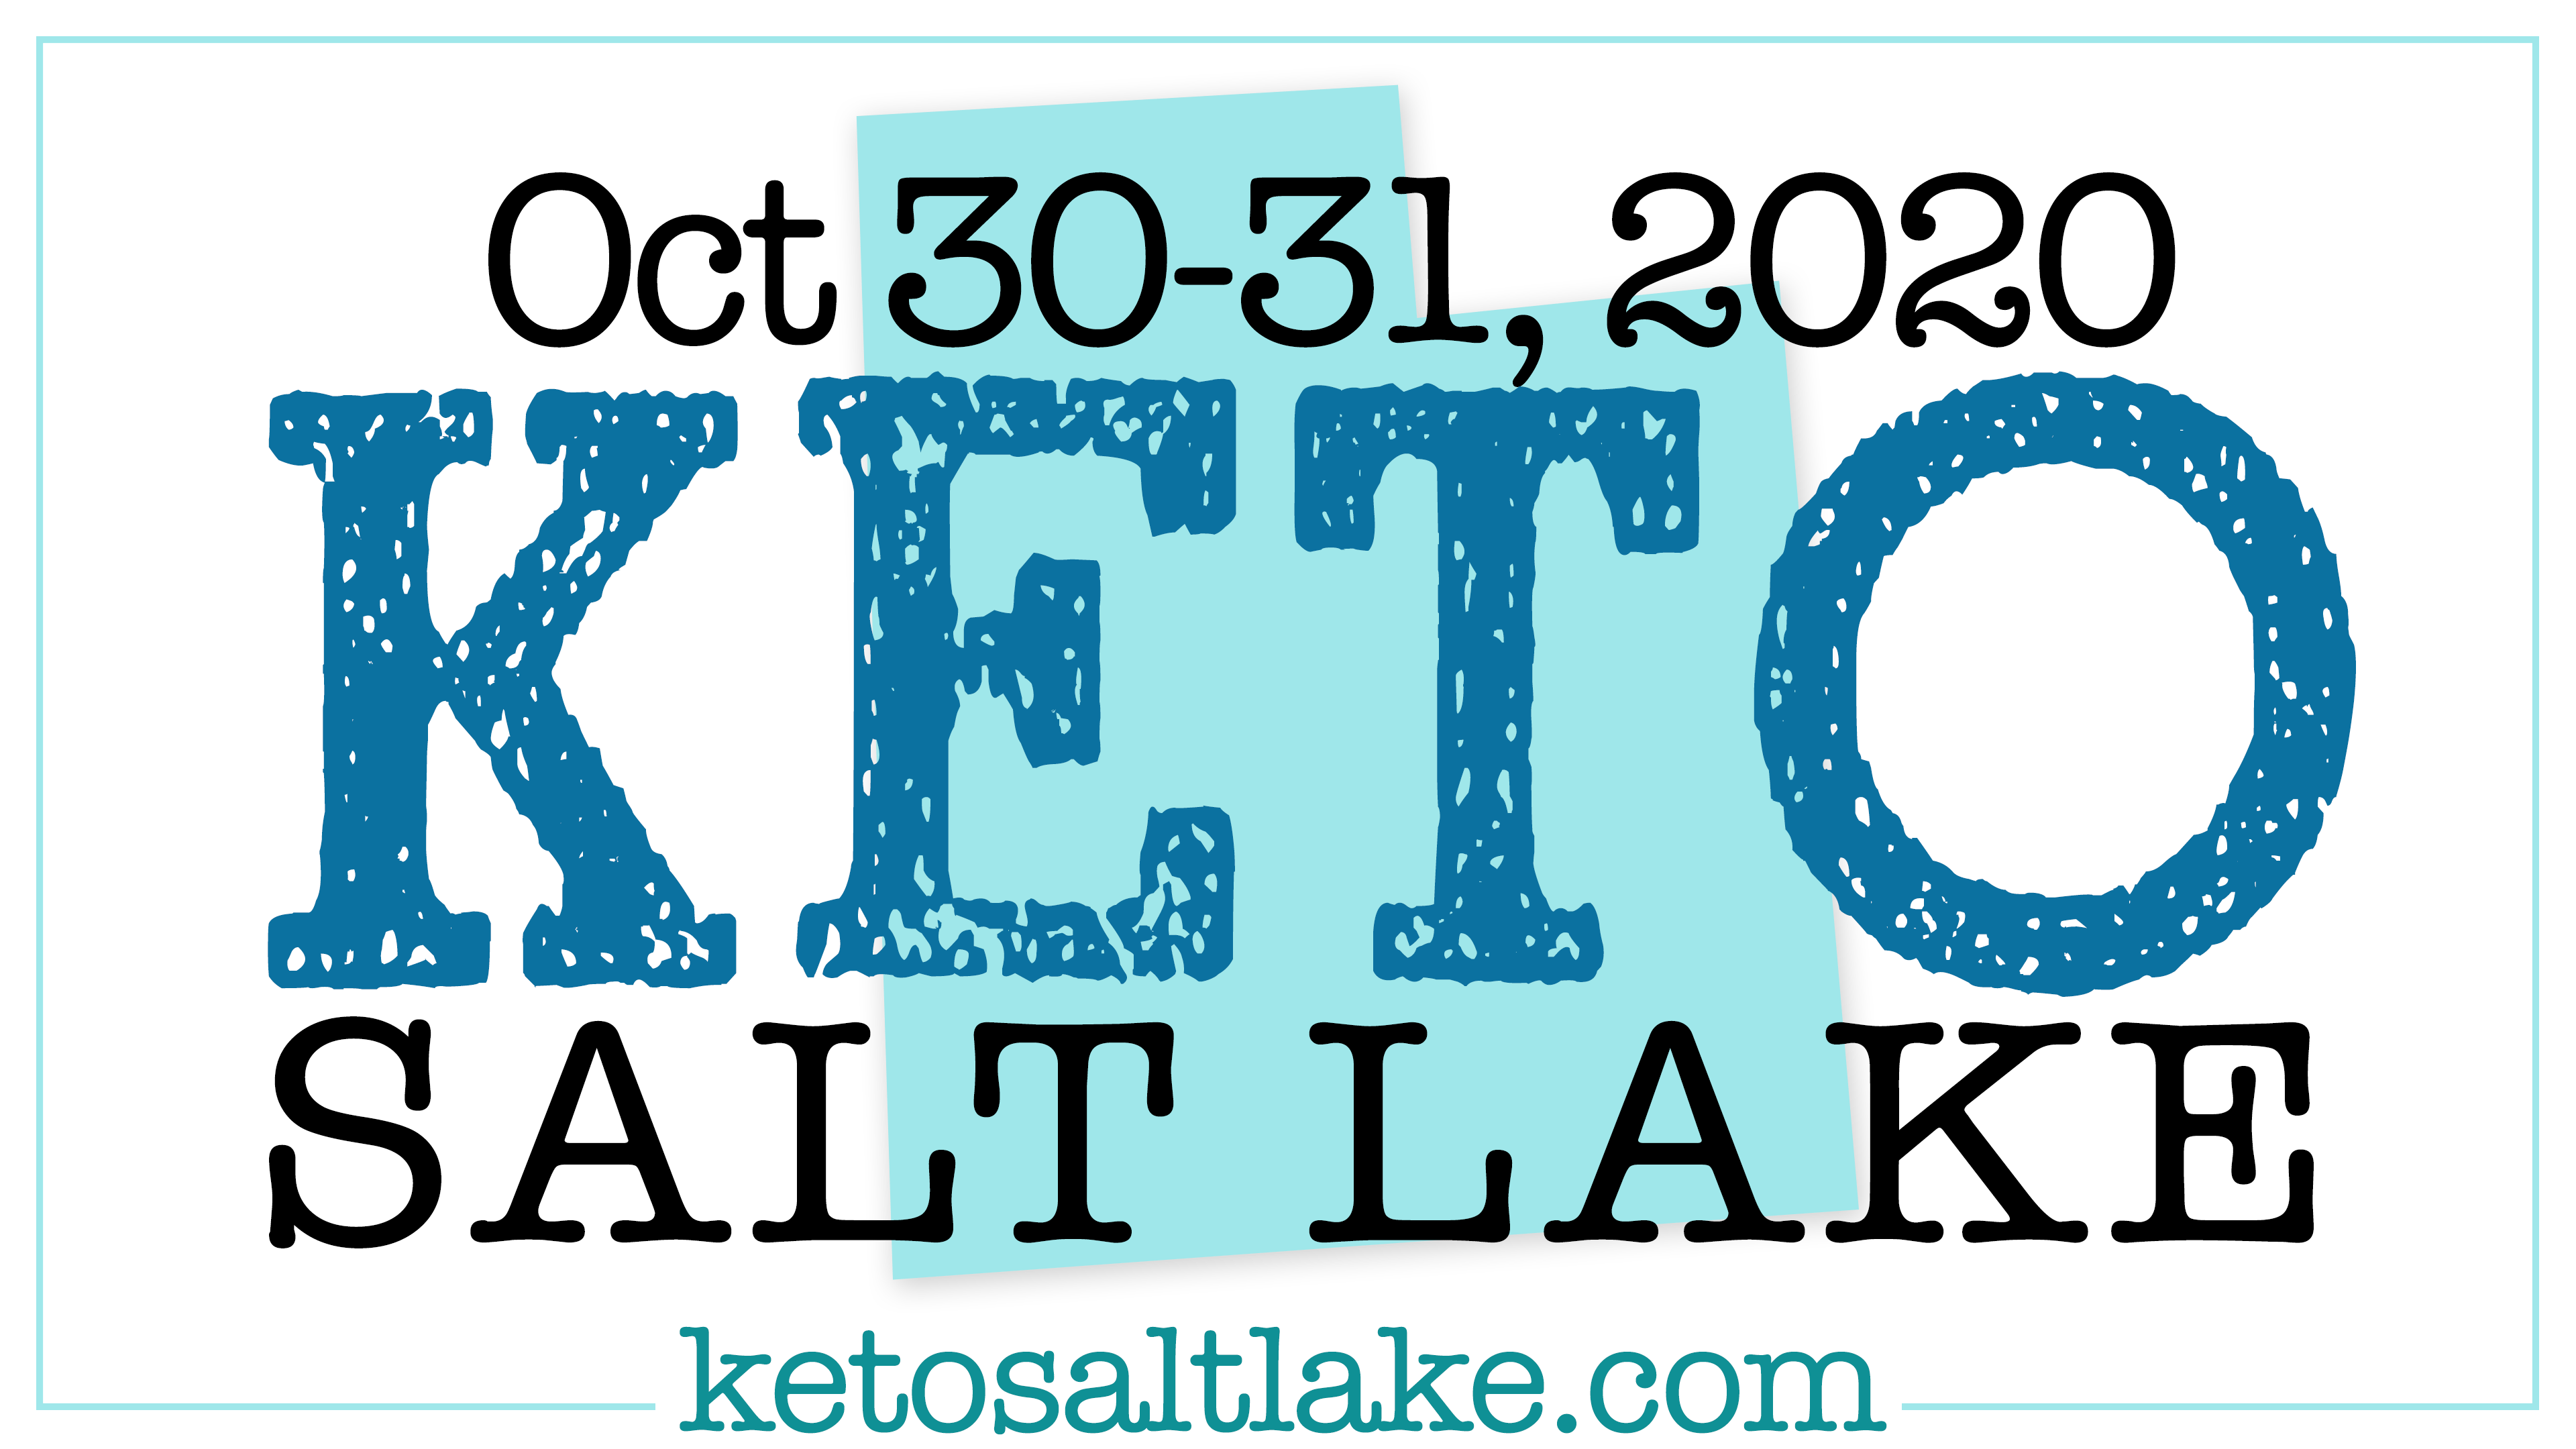 Keto Salt Lake Conference